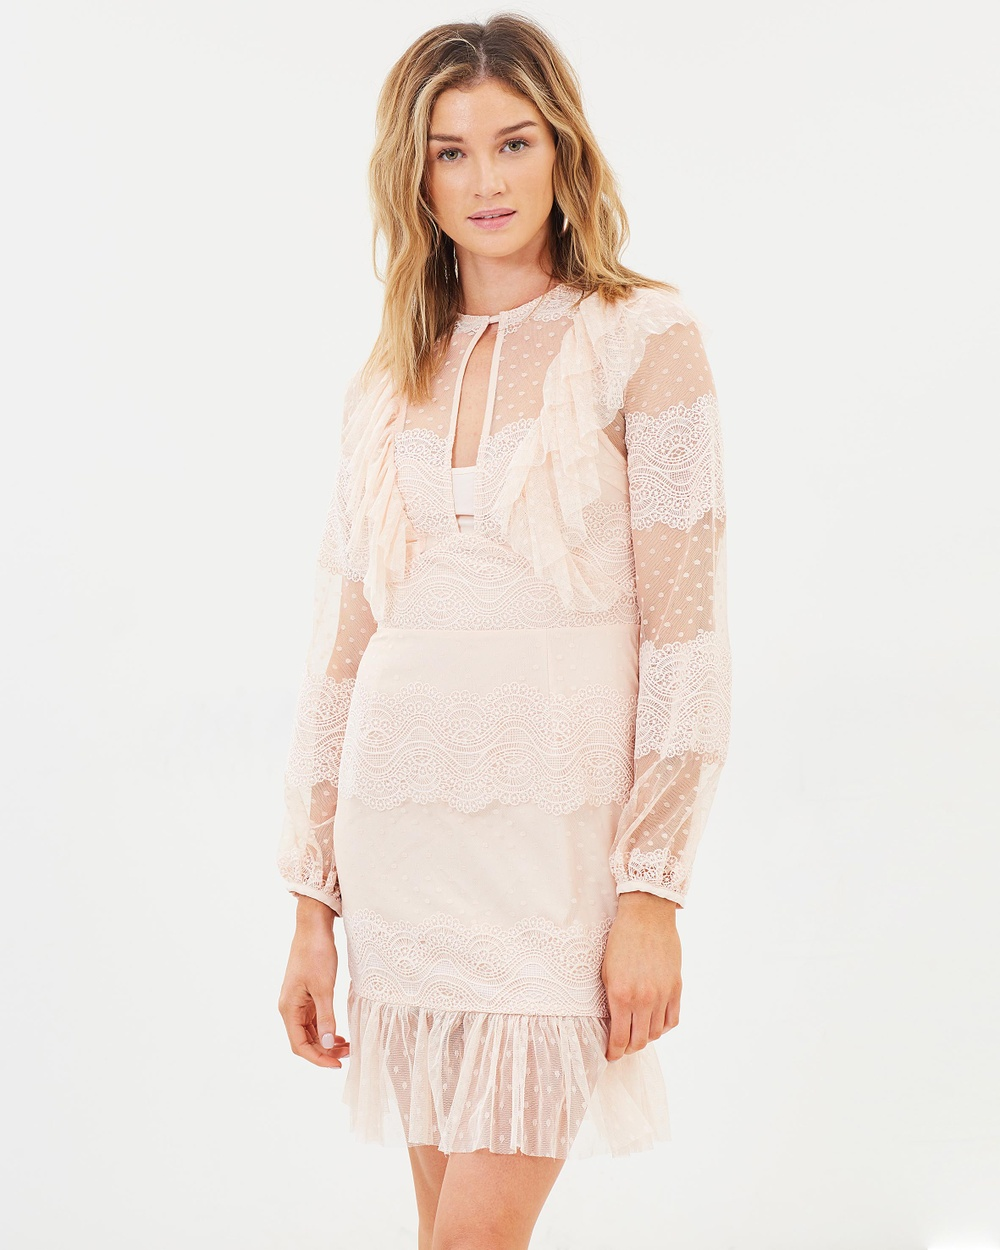 Cooper St Flute Mini Lace Dress Dresses Powder Pink Flute Mini Lace Dress